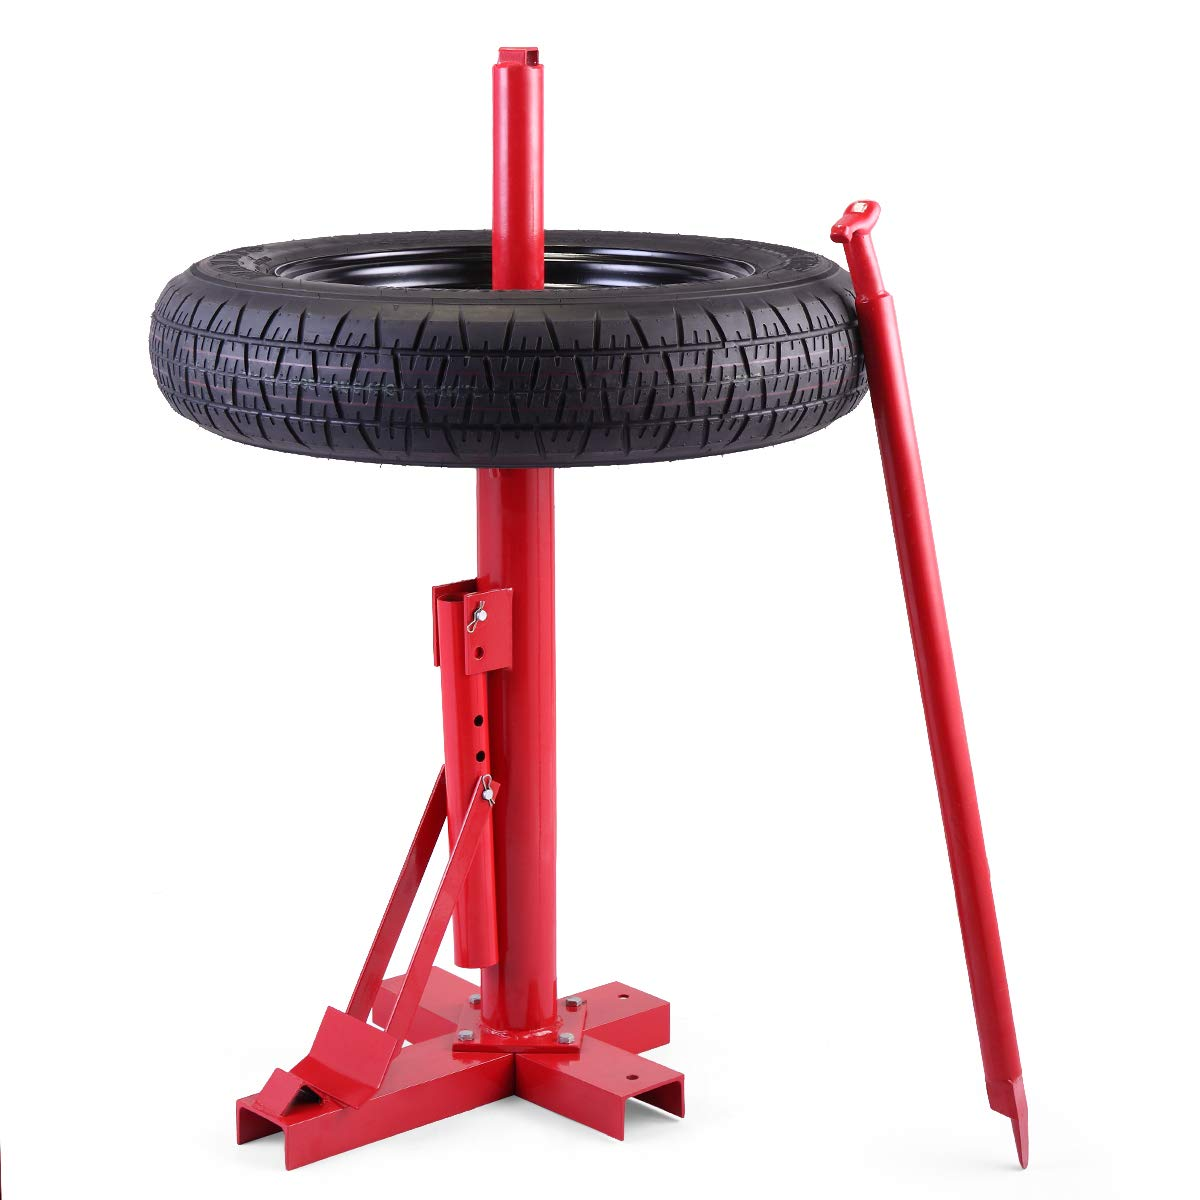 JAXPETY Red New Tools Tire Changer Manual Tire Changer Heavy Duty Changer Bead Breaker by JAXPETY